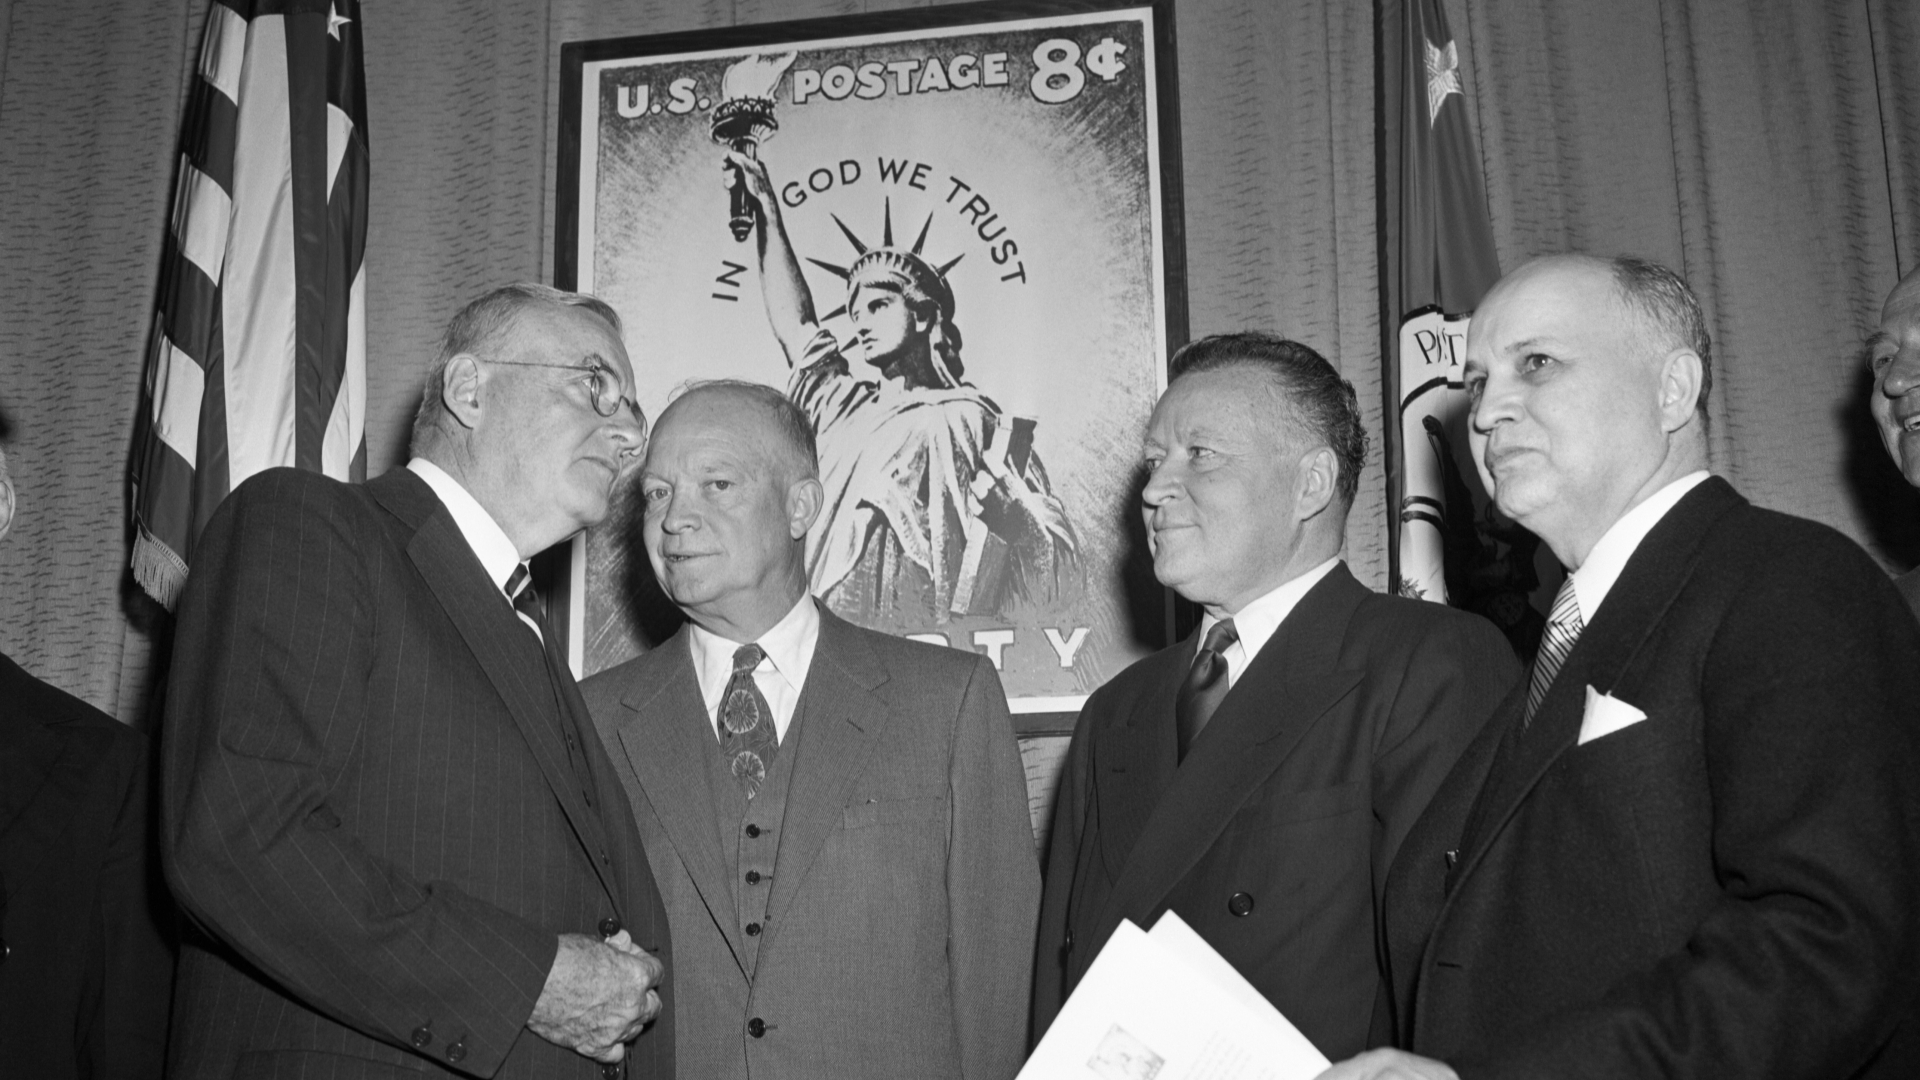 Secretary of State John Foster Dulles, President Eisenhower, Postmaster General Arthur Summerfield and Dr. Roy G. Ross of the National Council of Churches shown at a Post Office Department ceremony introducing the nation's first regular stamp bearing a religious significance with the inscription 'In God We Trust.' (Credit: Bettmann Archives/Getty Images)